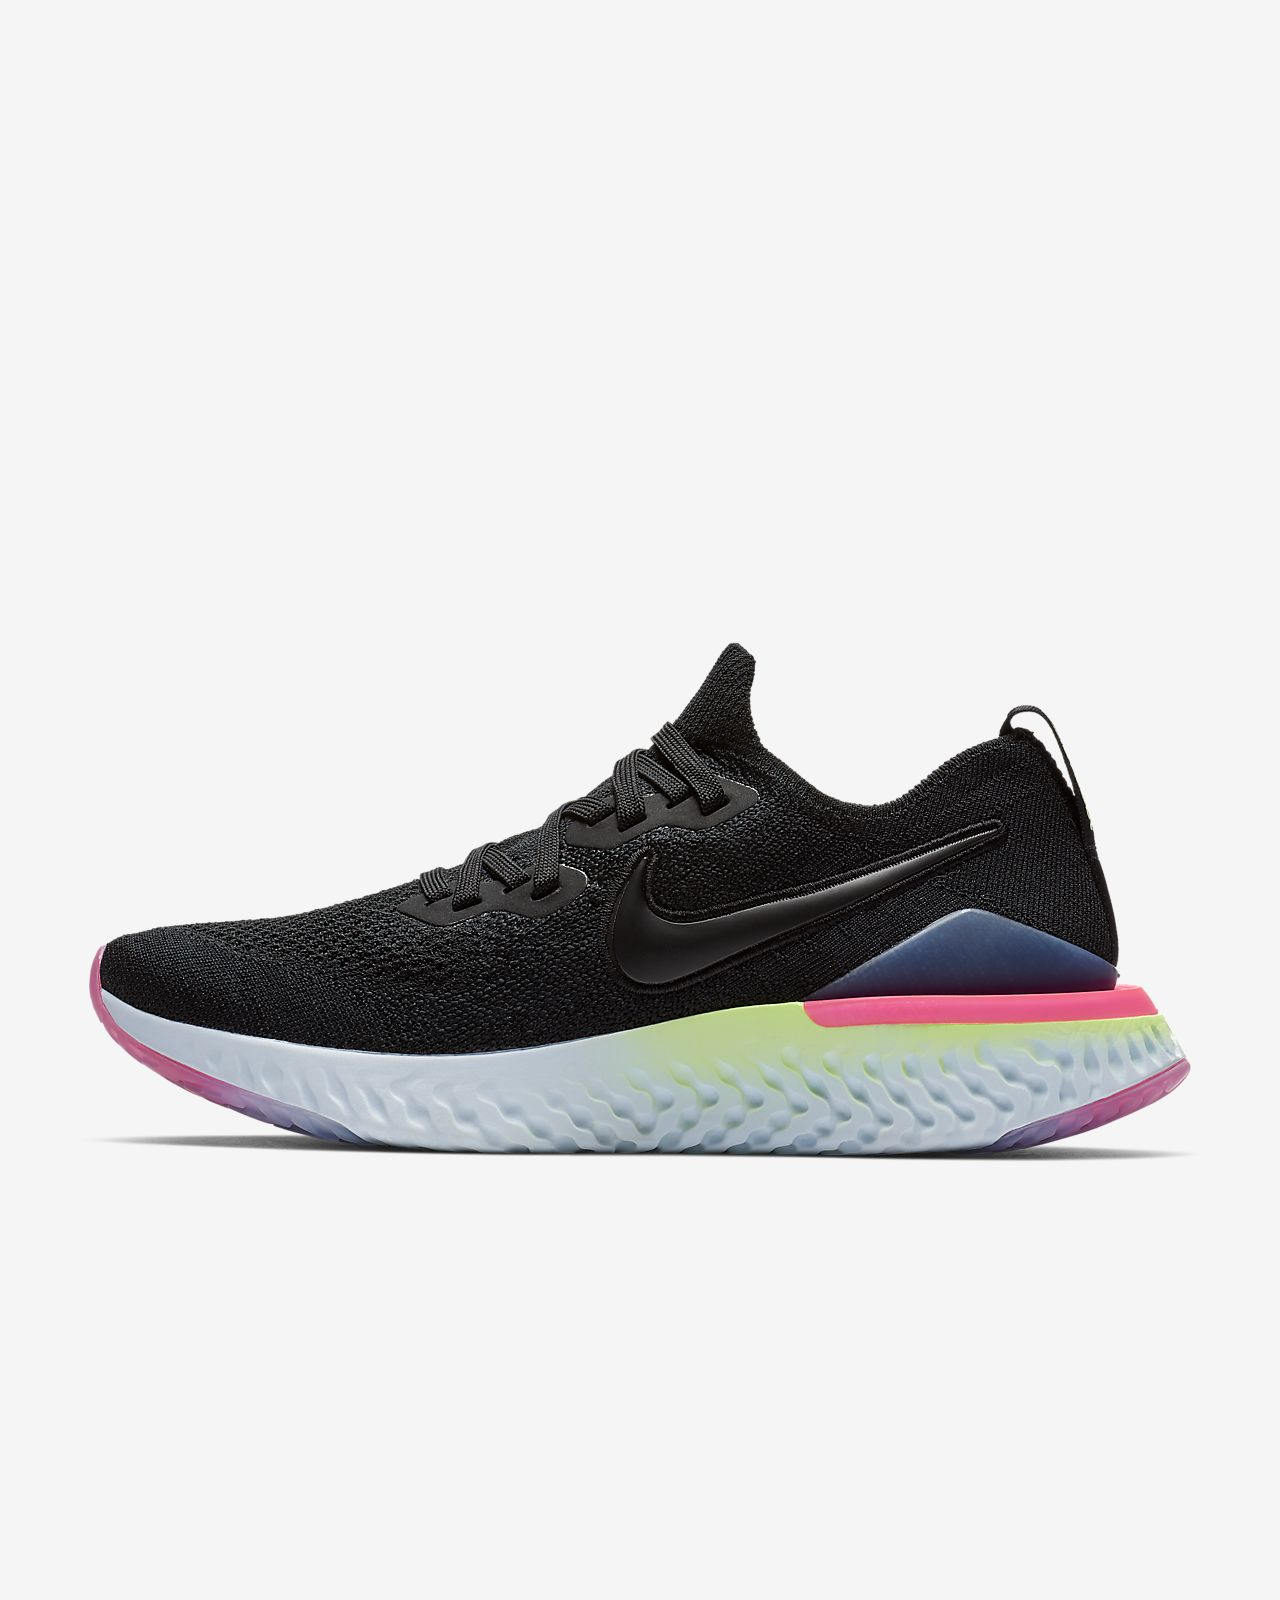 057cd0fa6360c Nike Epic React Flyknit 2 Women s Running Shoe. Nike.com